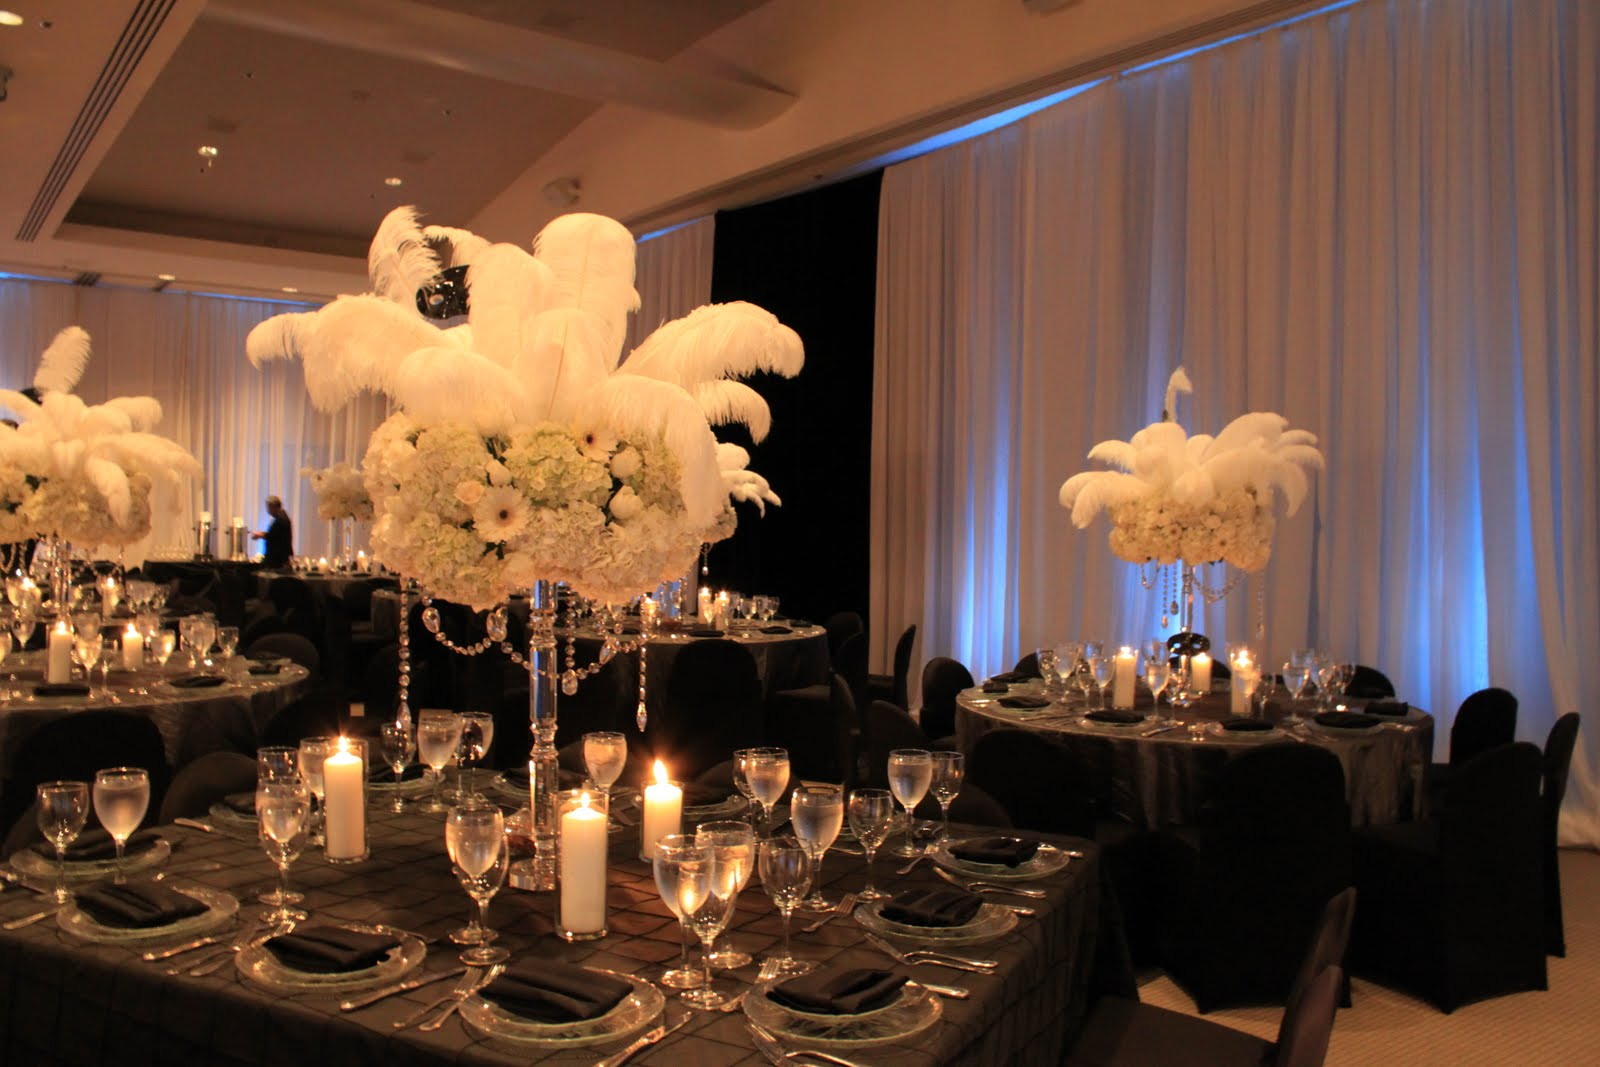 Chair Covers Wedding Near Me Tablecloths And For Sale In Johannesburg Weddings Florist Washington Dc Davinciflorist Us